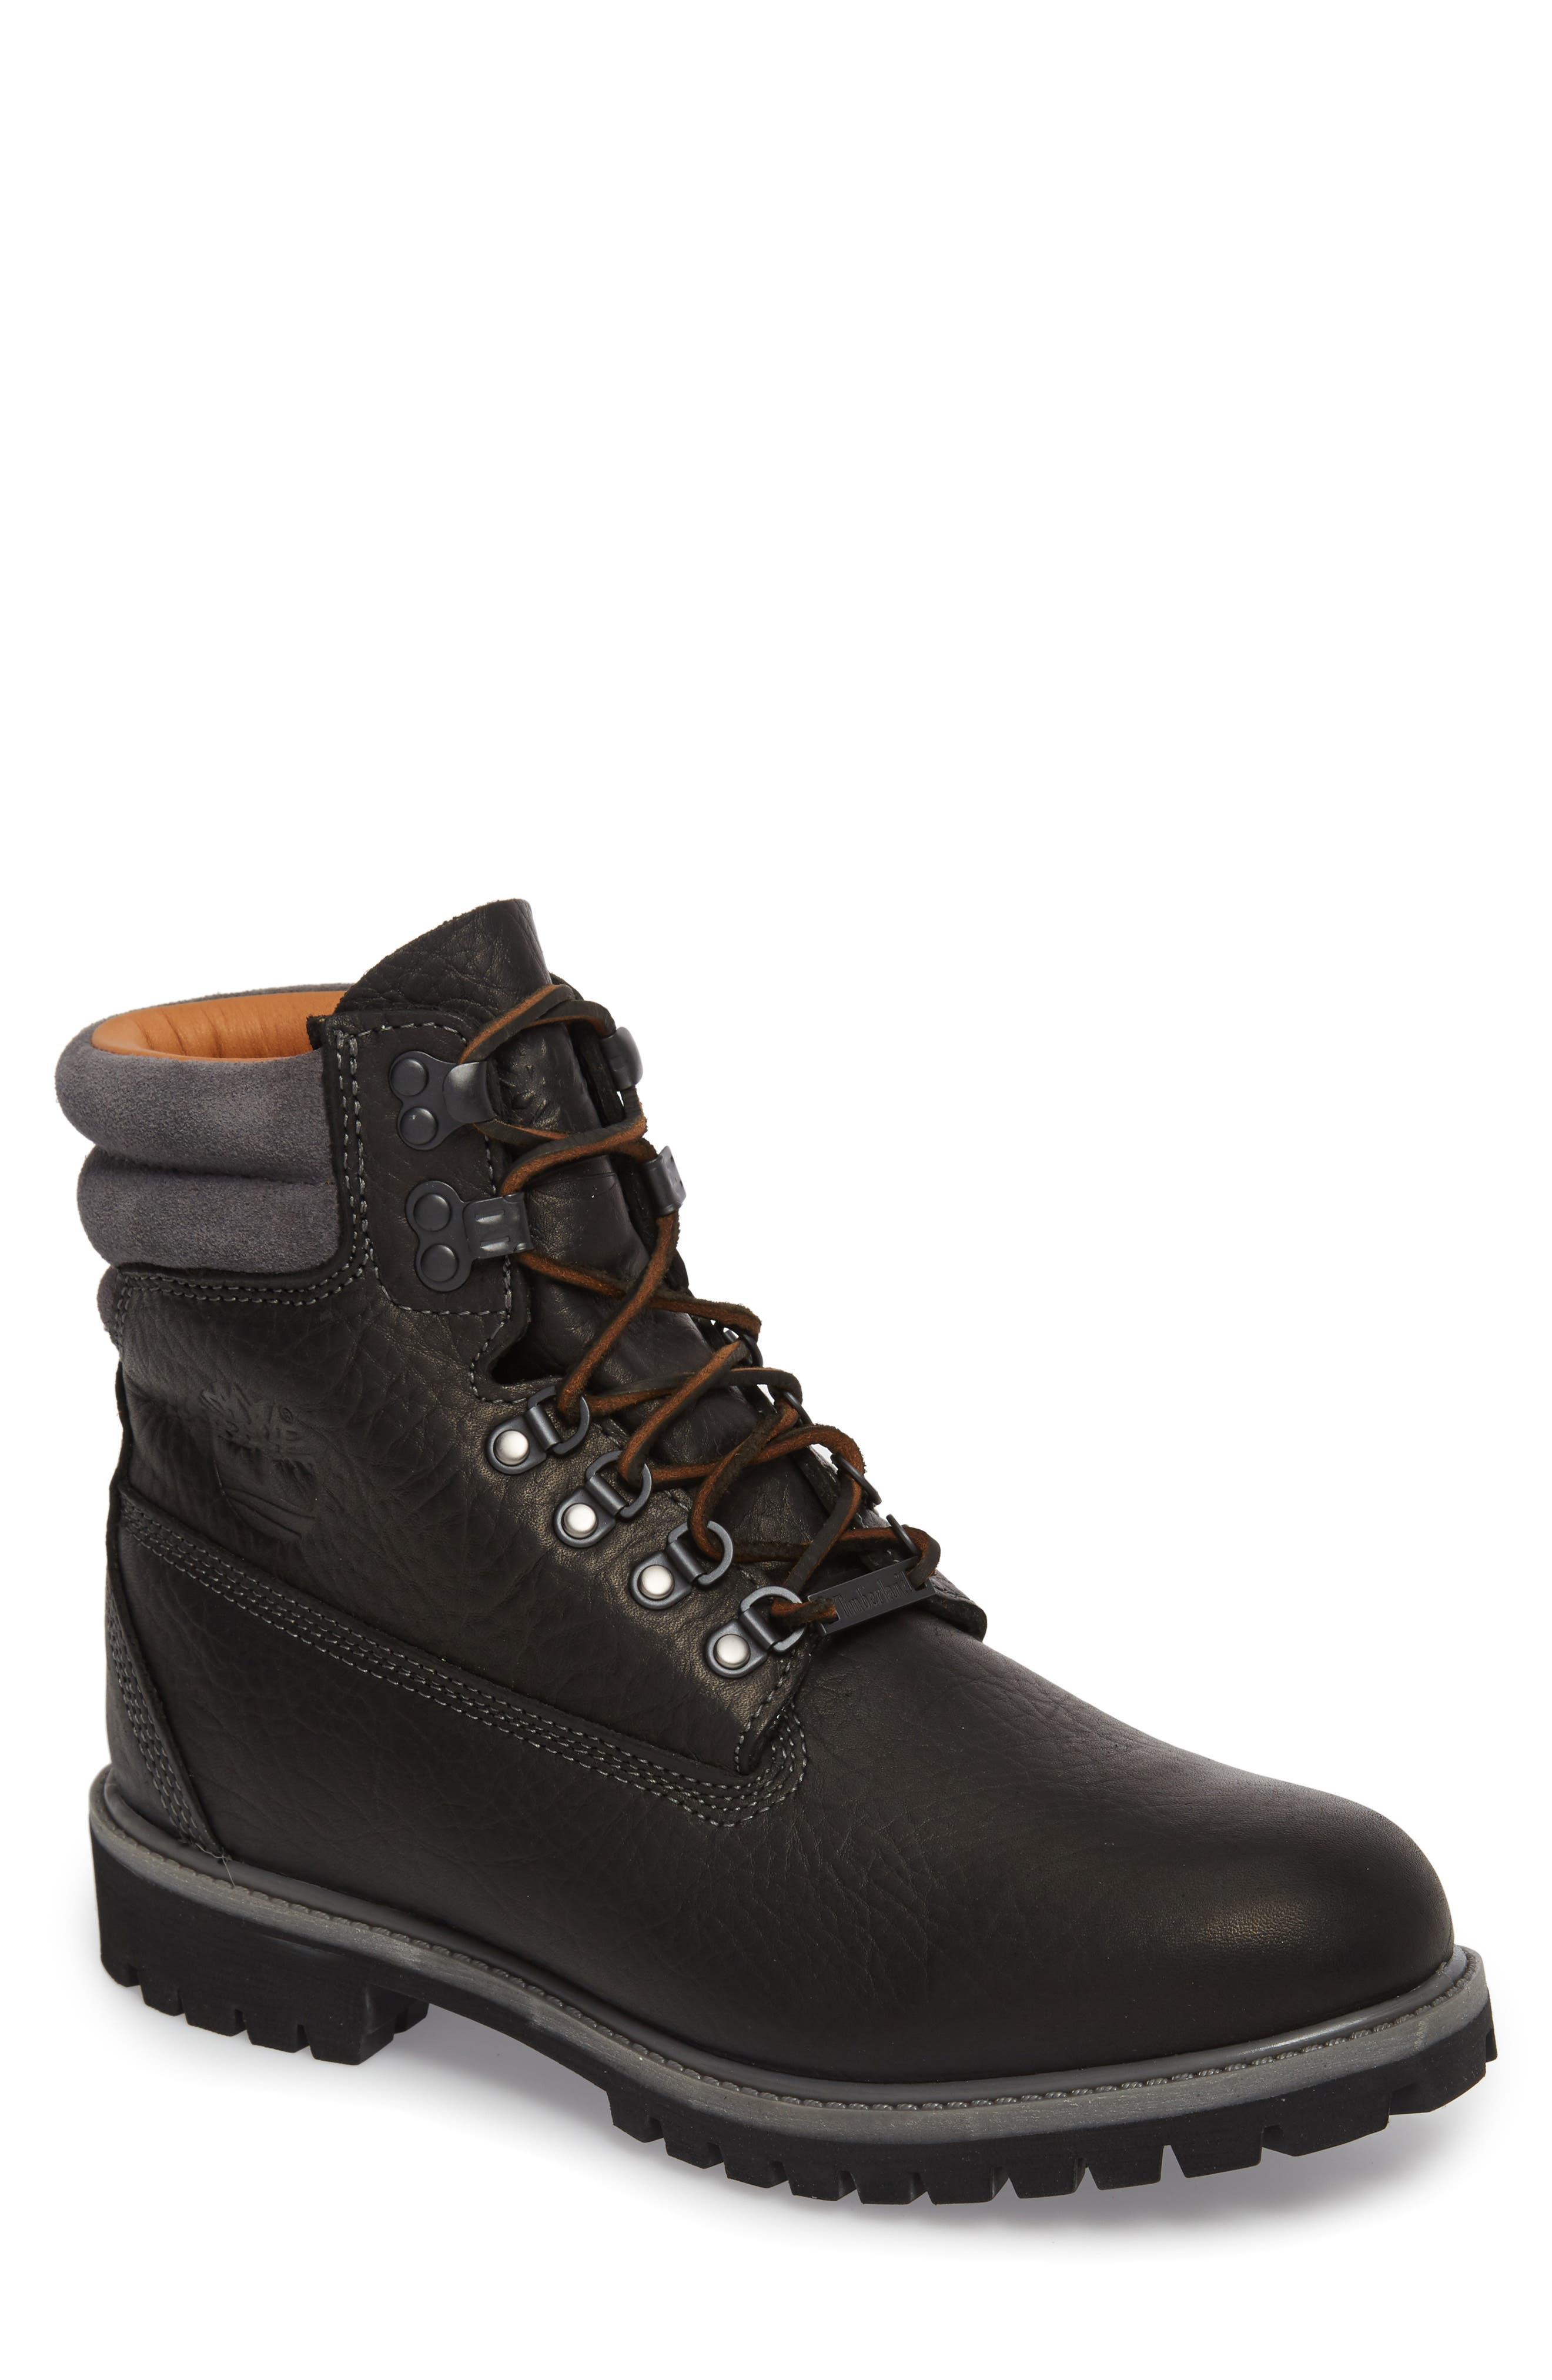 640 Below Plain Toe Boot,                             Main thumbnail 1, color,                             Black Highway Leather